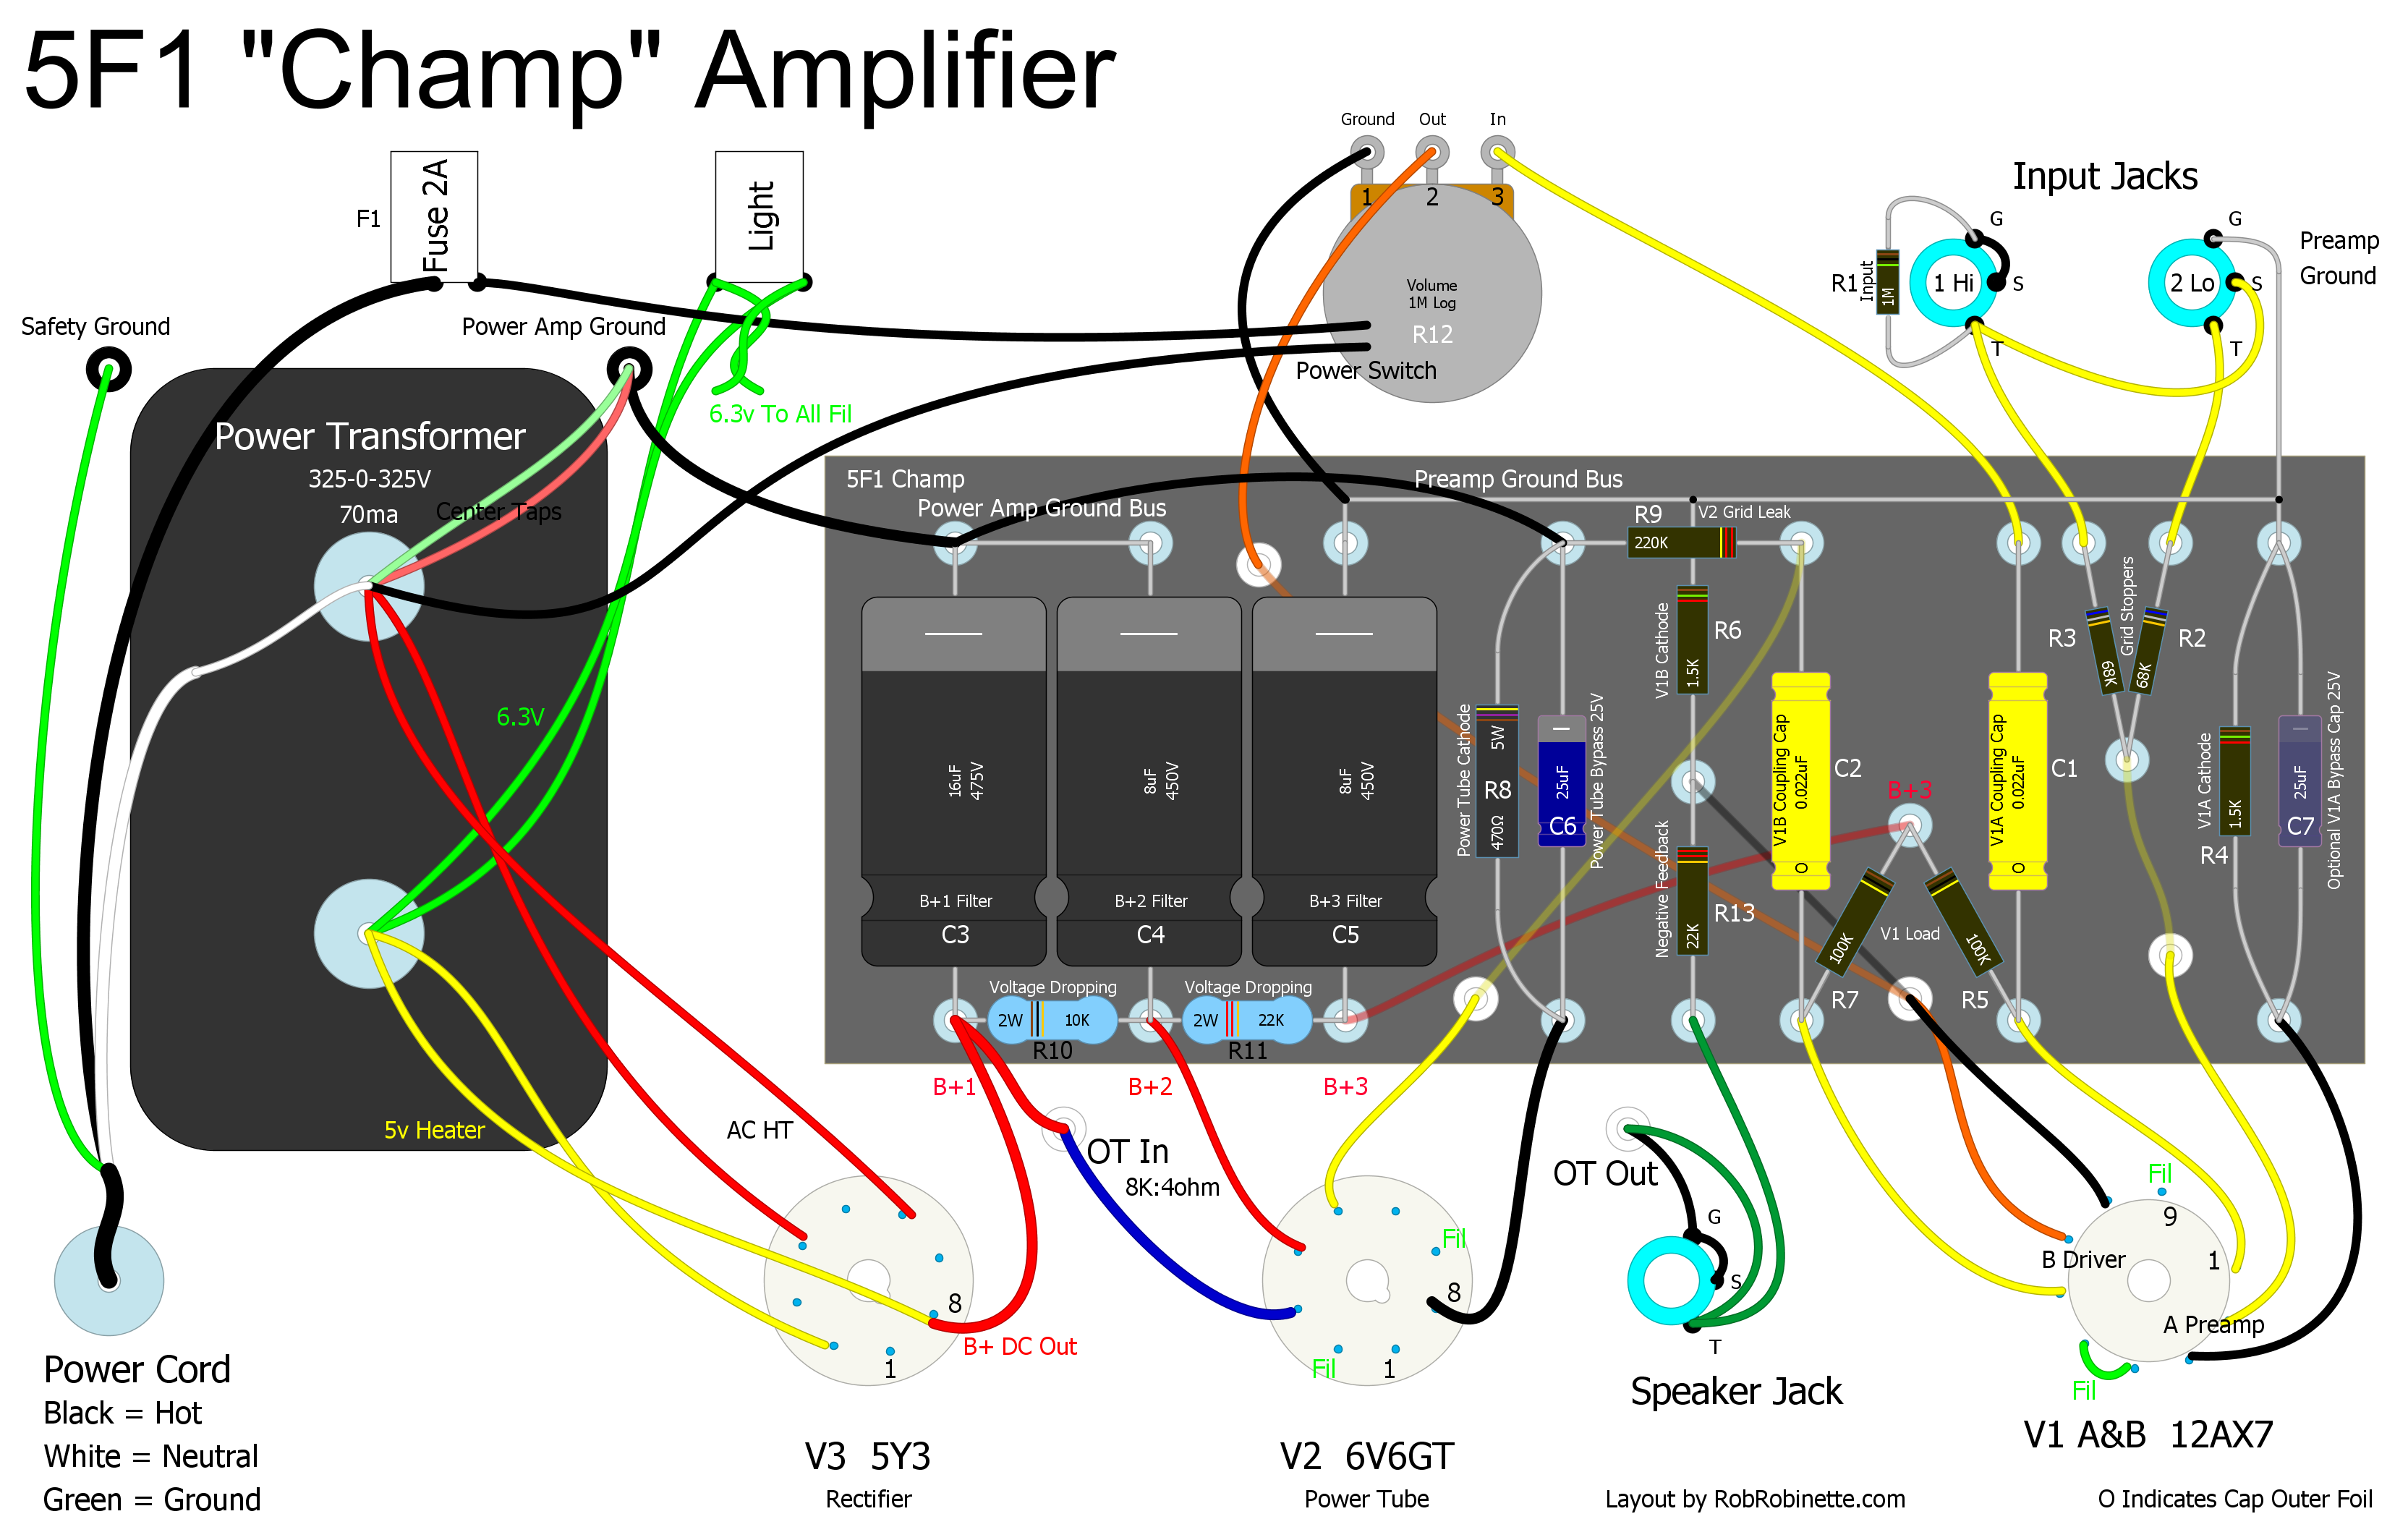 Build An Amp Push The Meter Into Black Mounting Flange From Back Until It Another Option For Someone That Has Some Electronic Experience Is Wonderful Fender 5e3 Deluxe Amplifier Two Power Tubes In A Pull